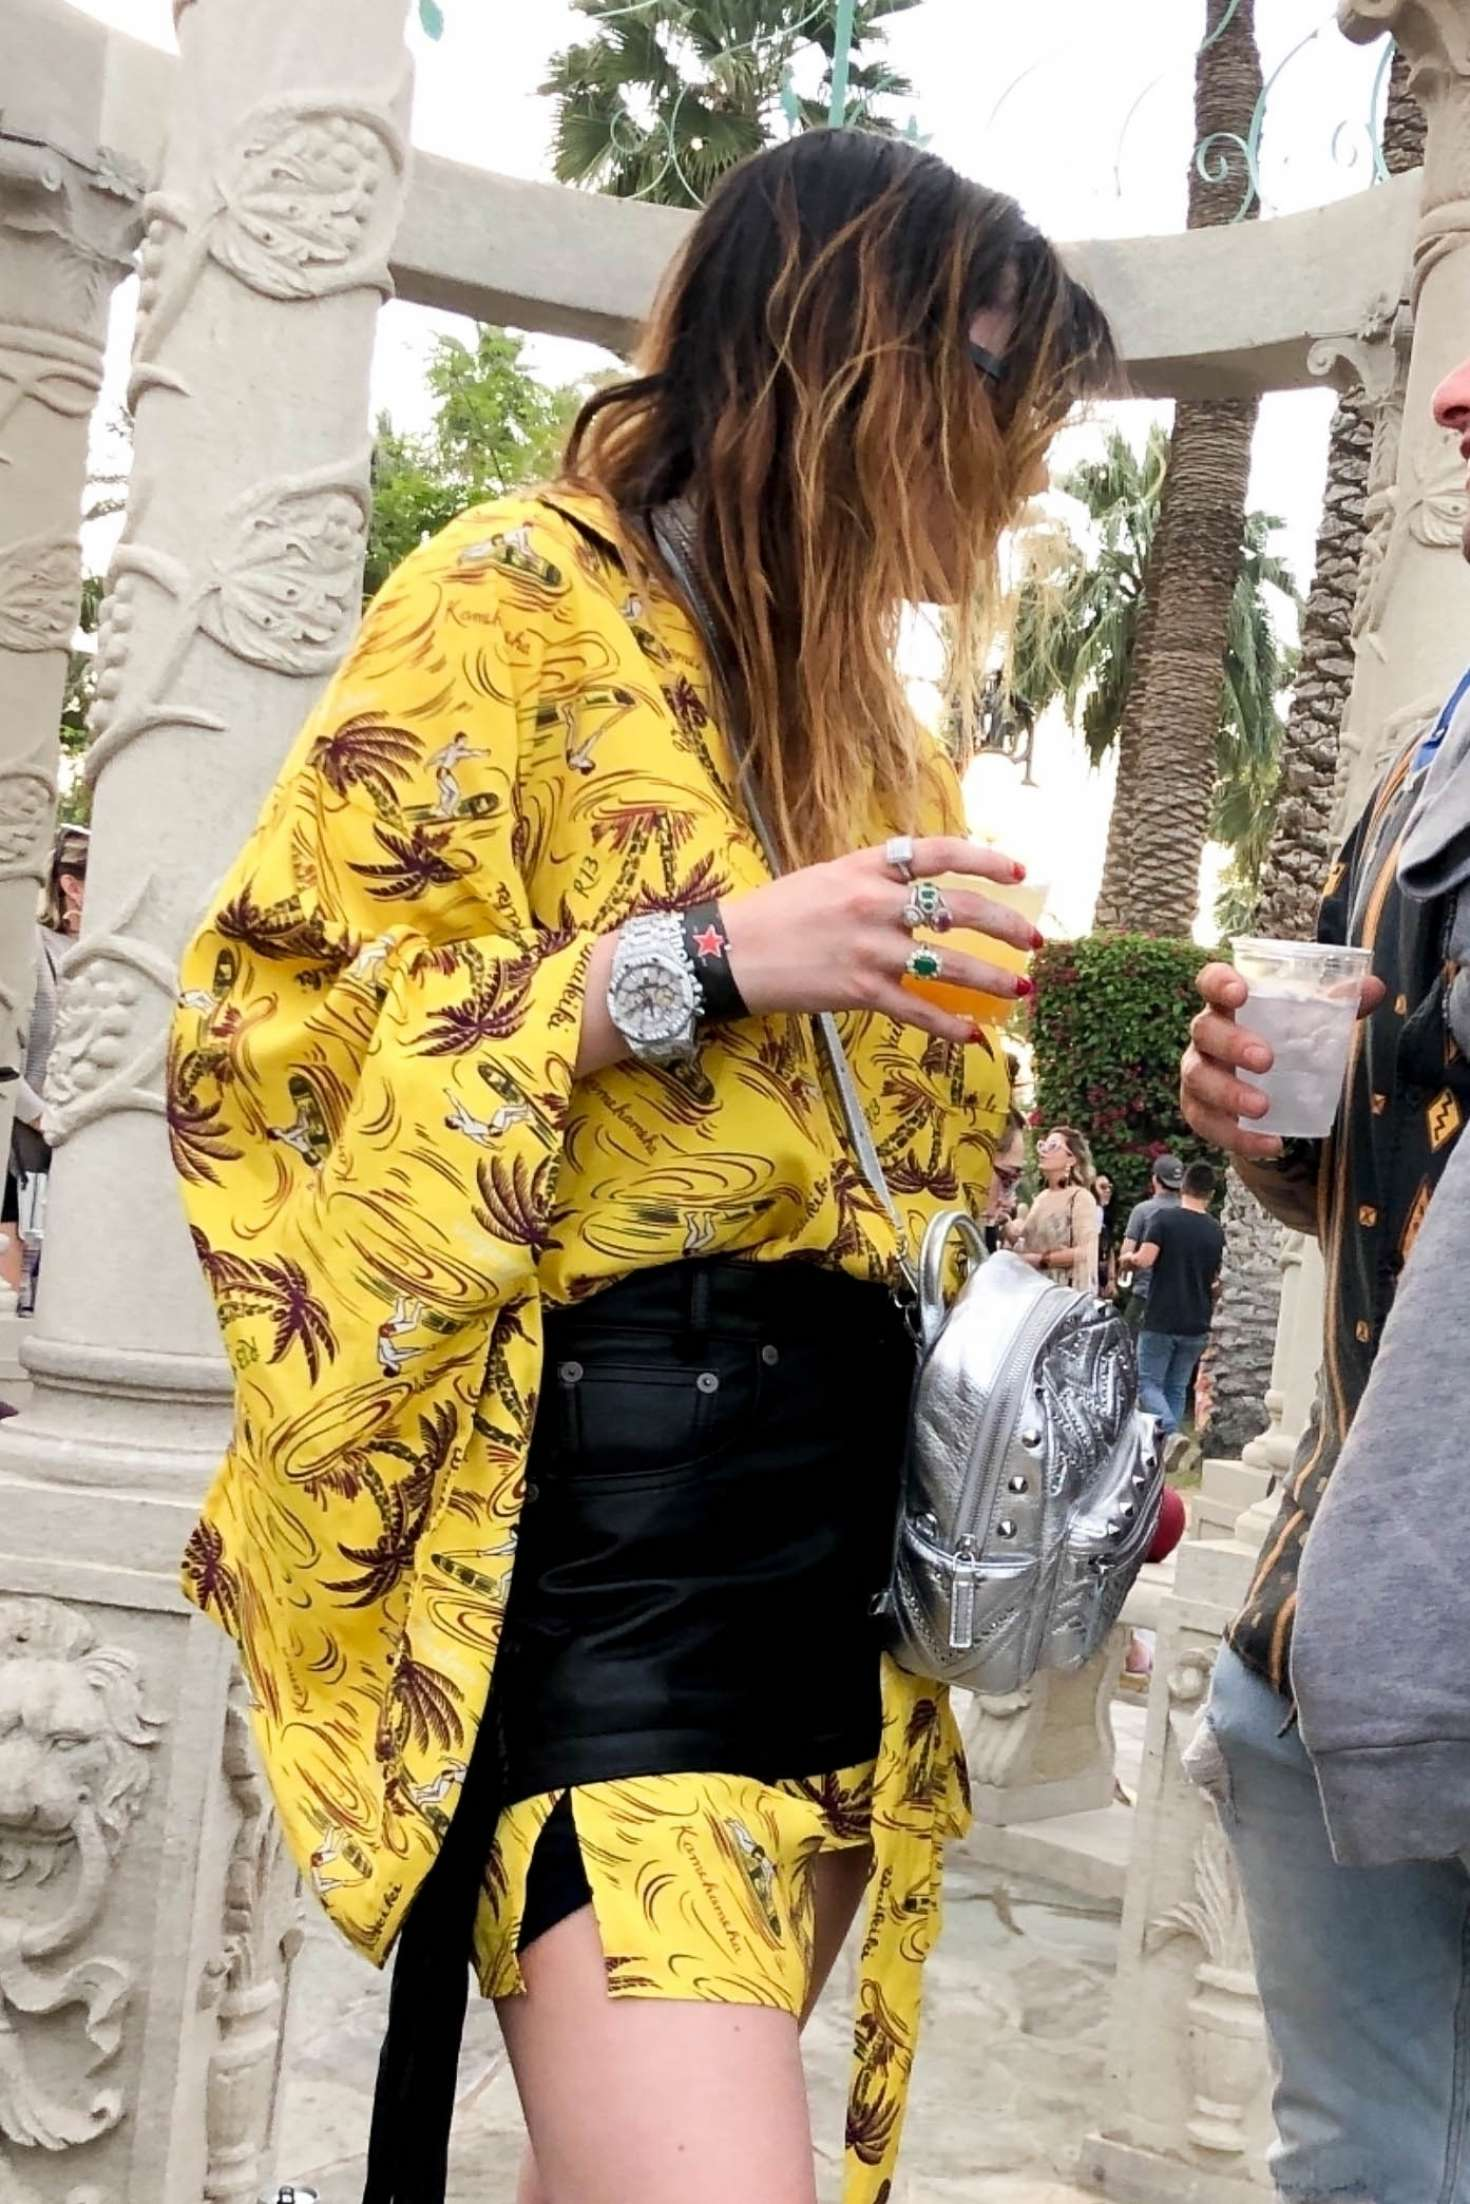 Bella Thorne 2019 : Bella Thorne at 2019 Coachella -12